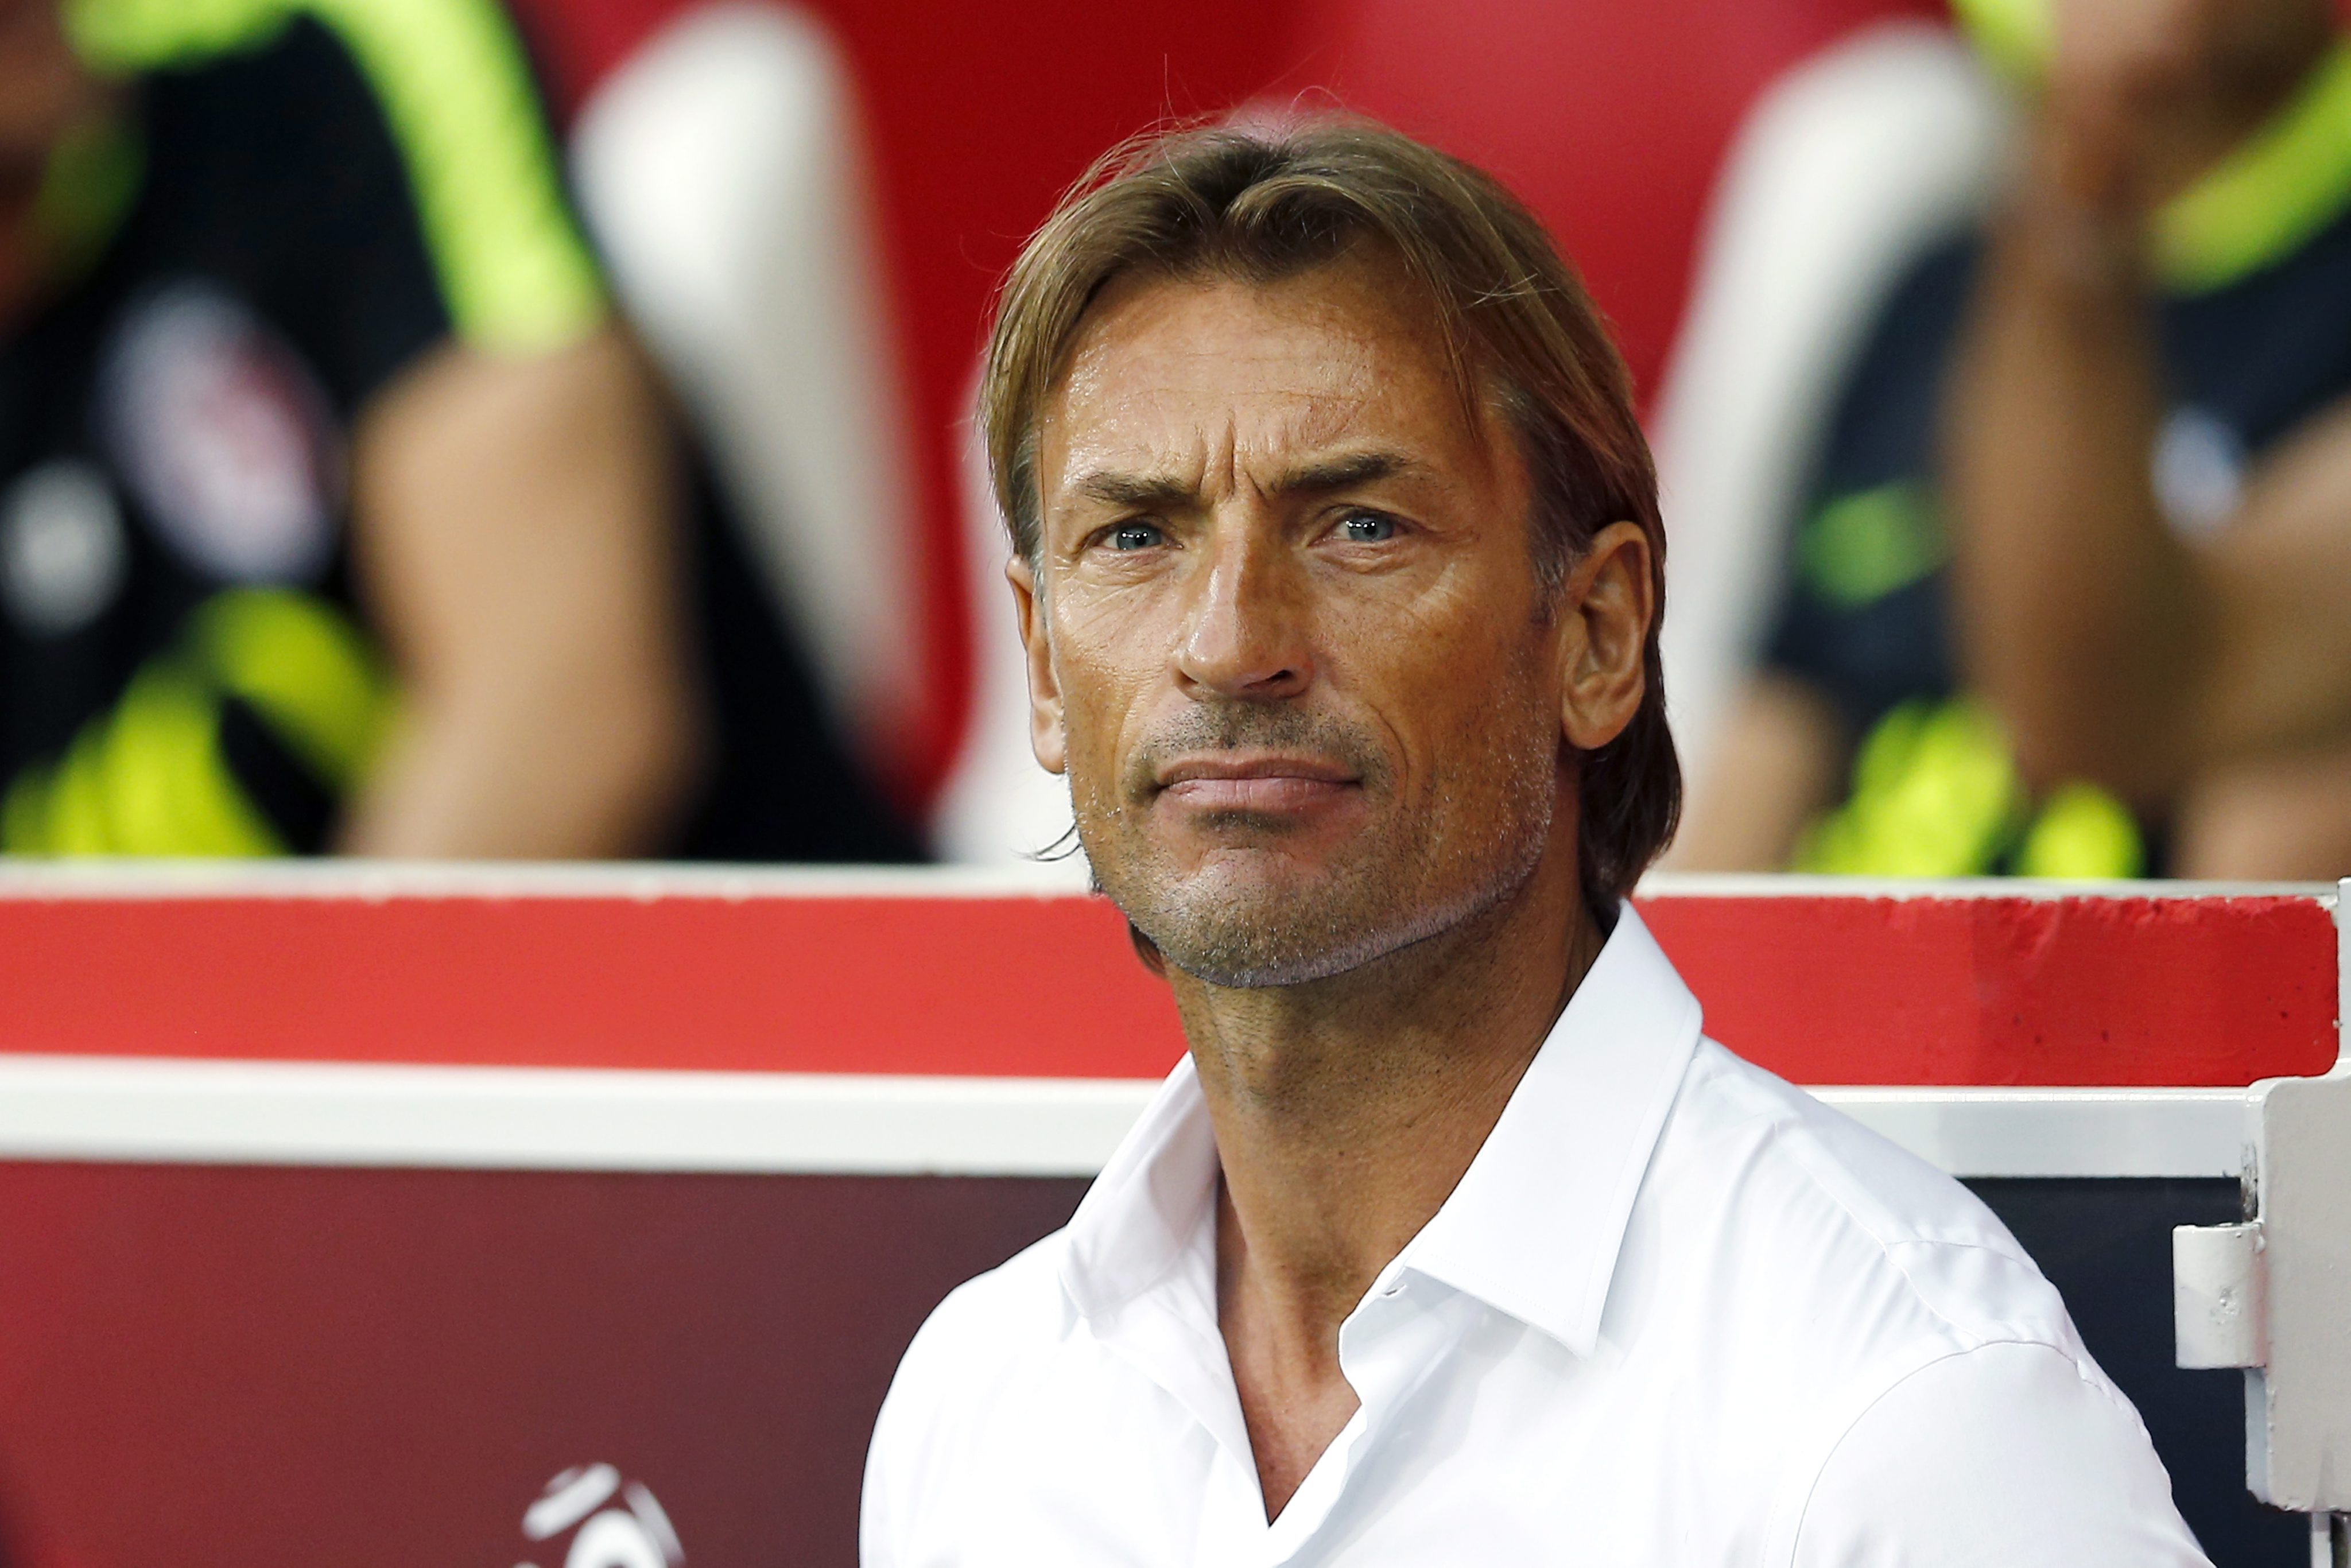 Herve Renard, despite being a two-time AFCON winning coach, will be managing his first ever game at a World Cup when Morocco take on Iran. (Photo courtesy: AFP/Getty)